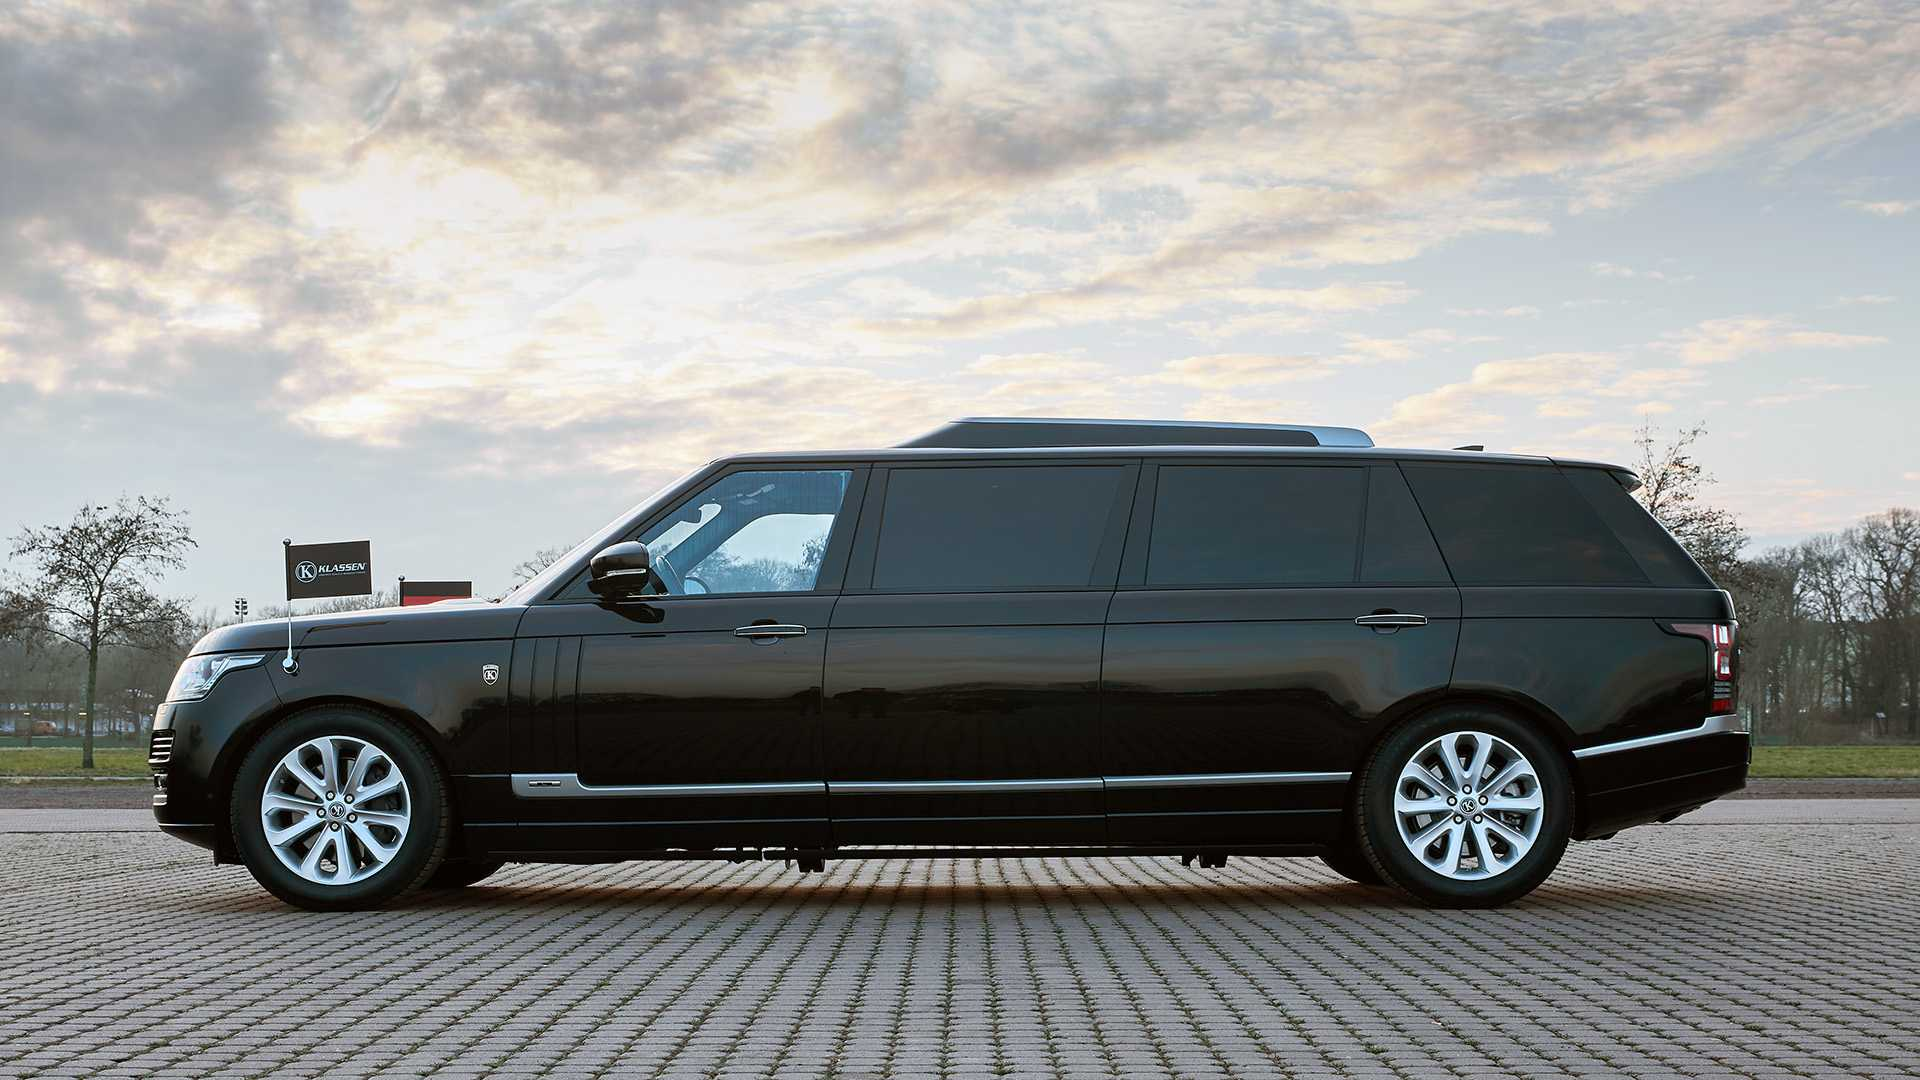 klassen-stretched-land-rover-range-rover-autobiography-1